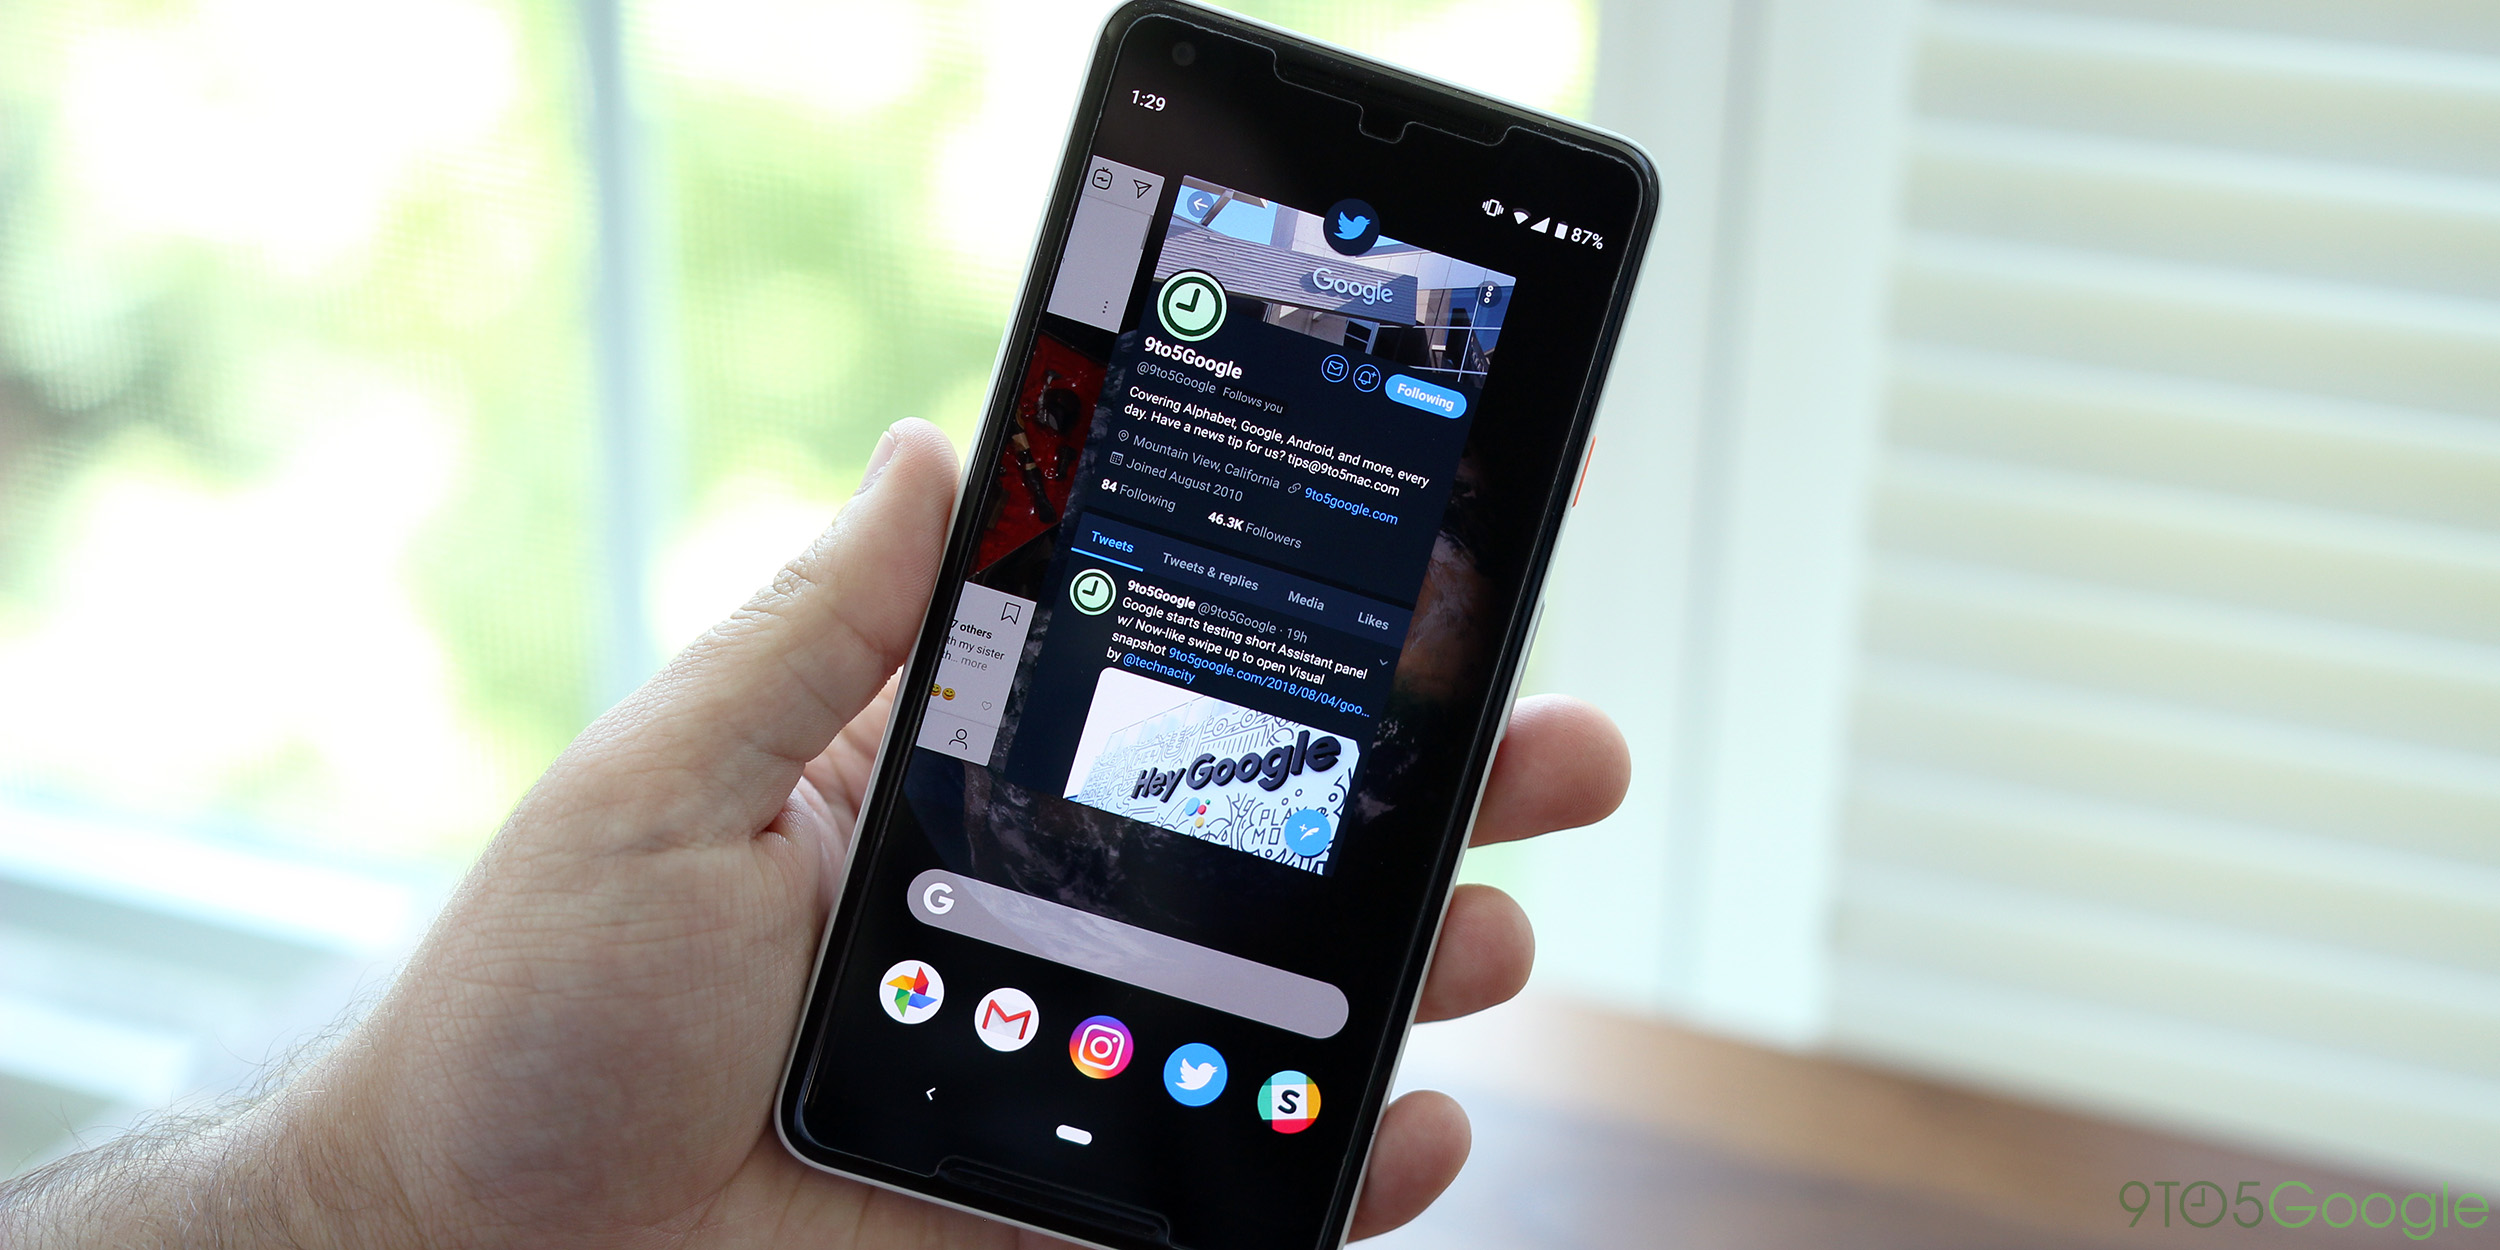 Google launches Android 9 Pie, rolling out now to Pixel and